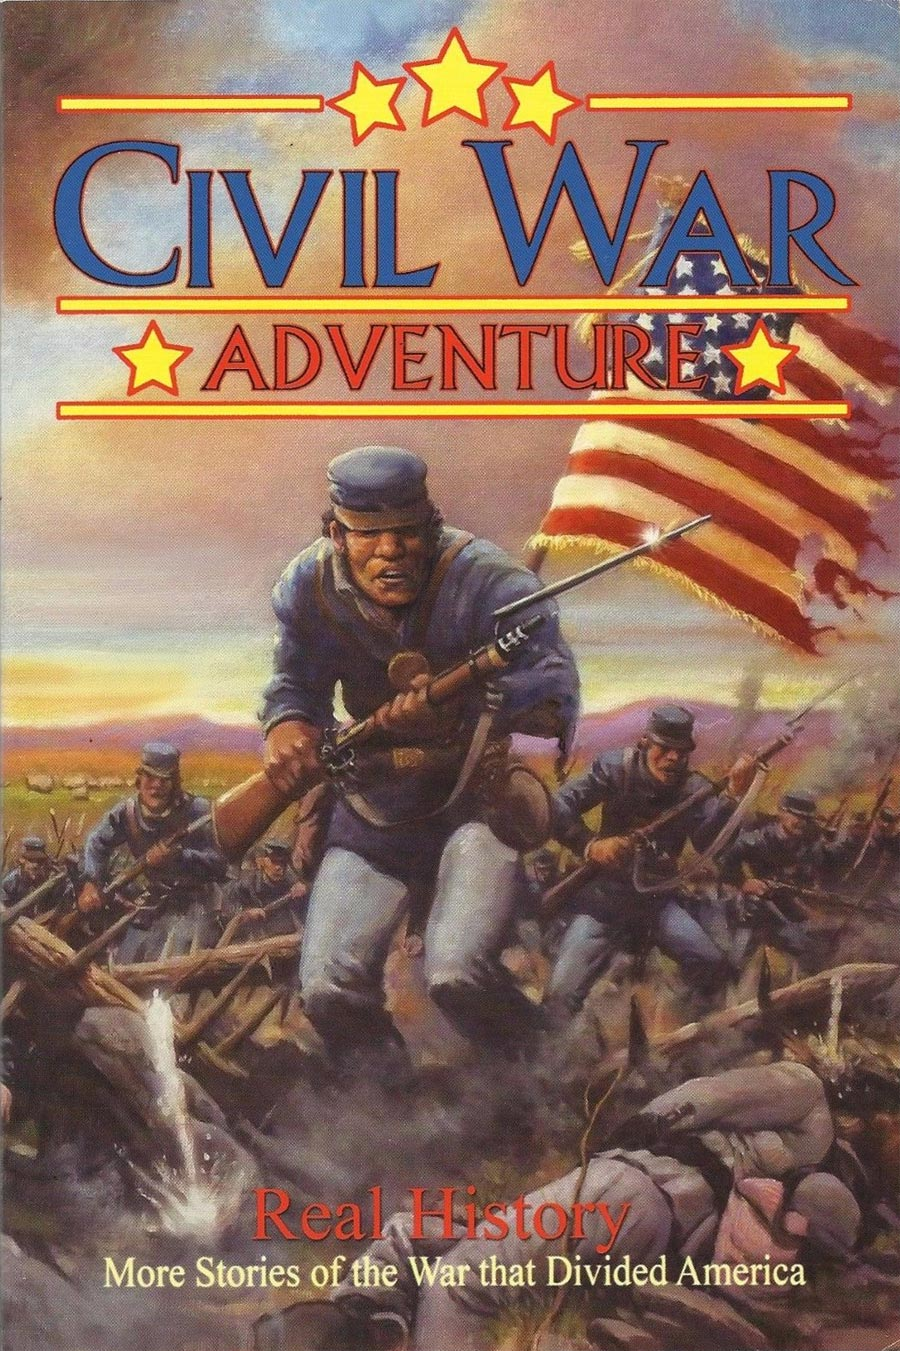 the civil war that divided the americans in two Into the 'great american versus south divide that created the two sides in the war two sides that made up the american civil war were.